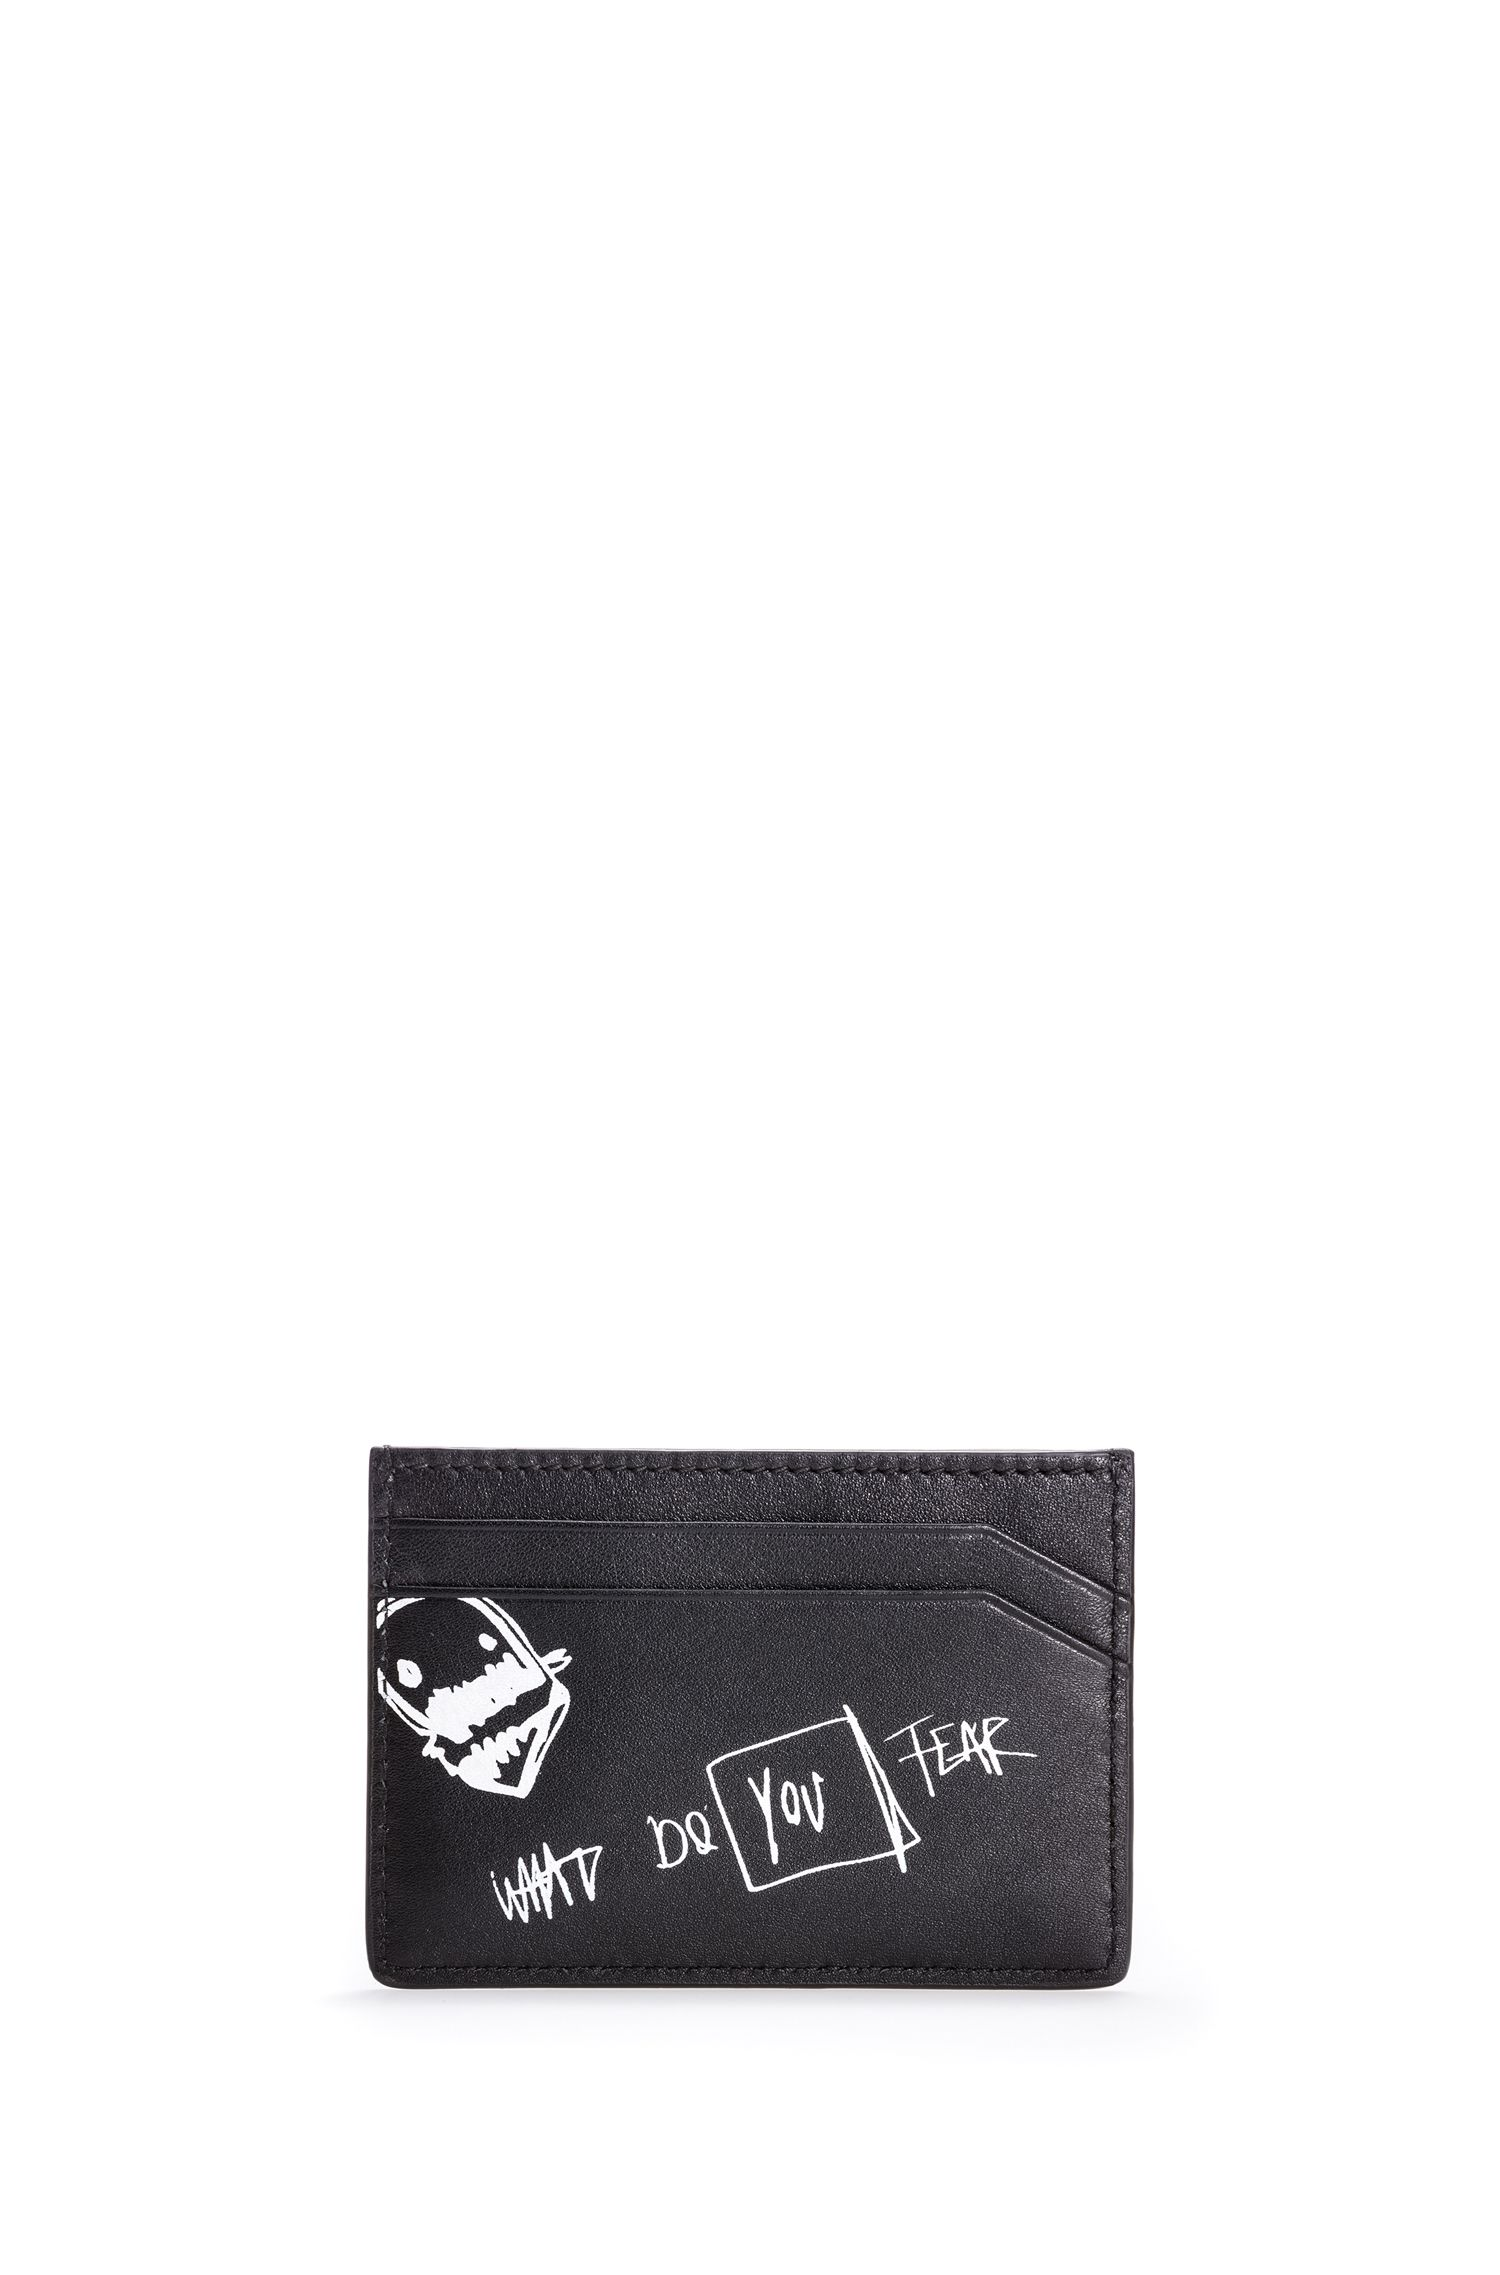 Leather card case with graffiti artwork